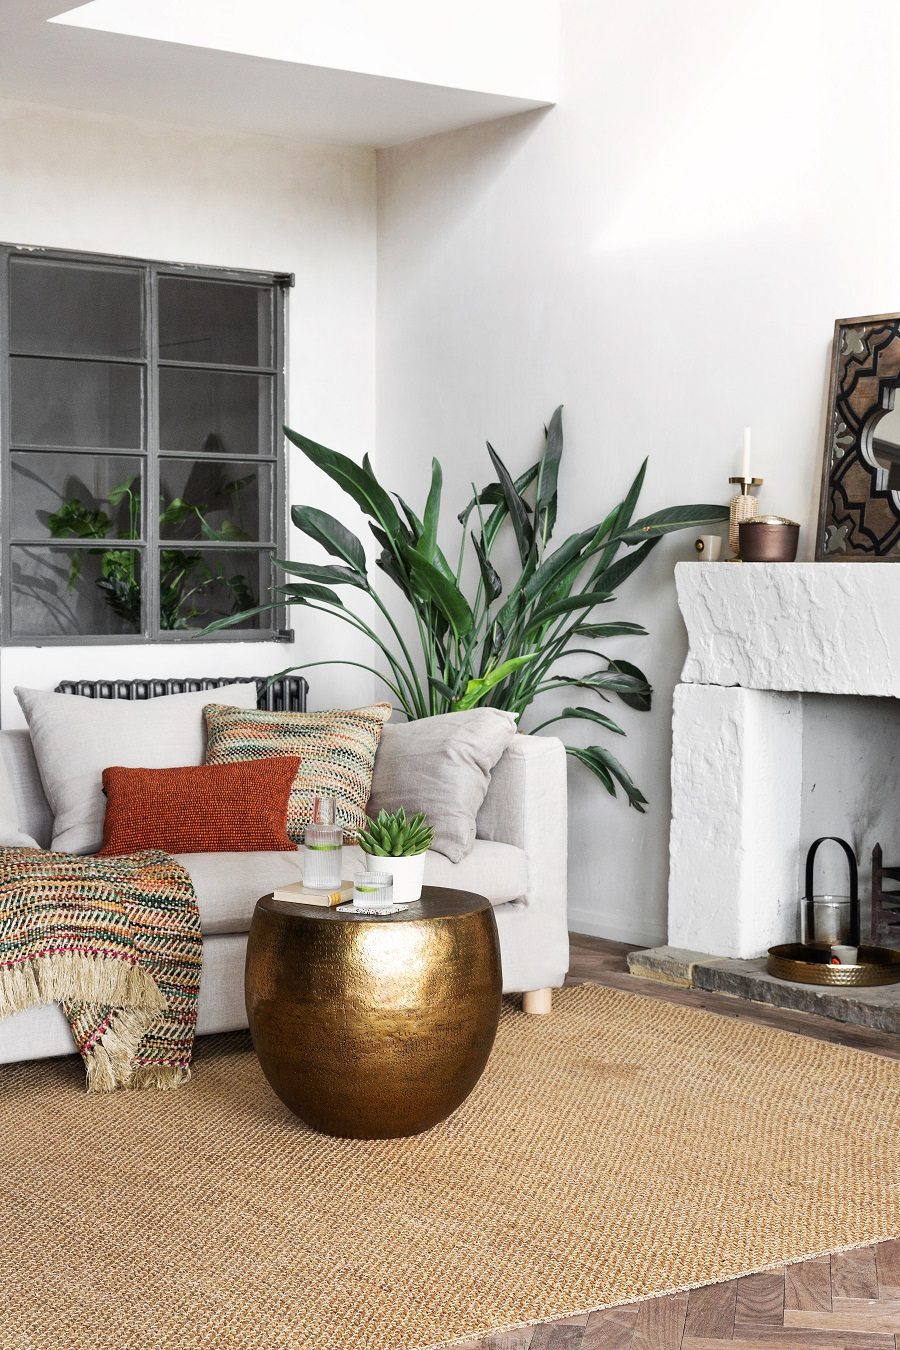 2020 Interior Trends - And What Feels Right at This Moment in Time